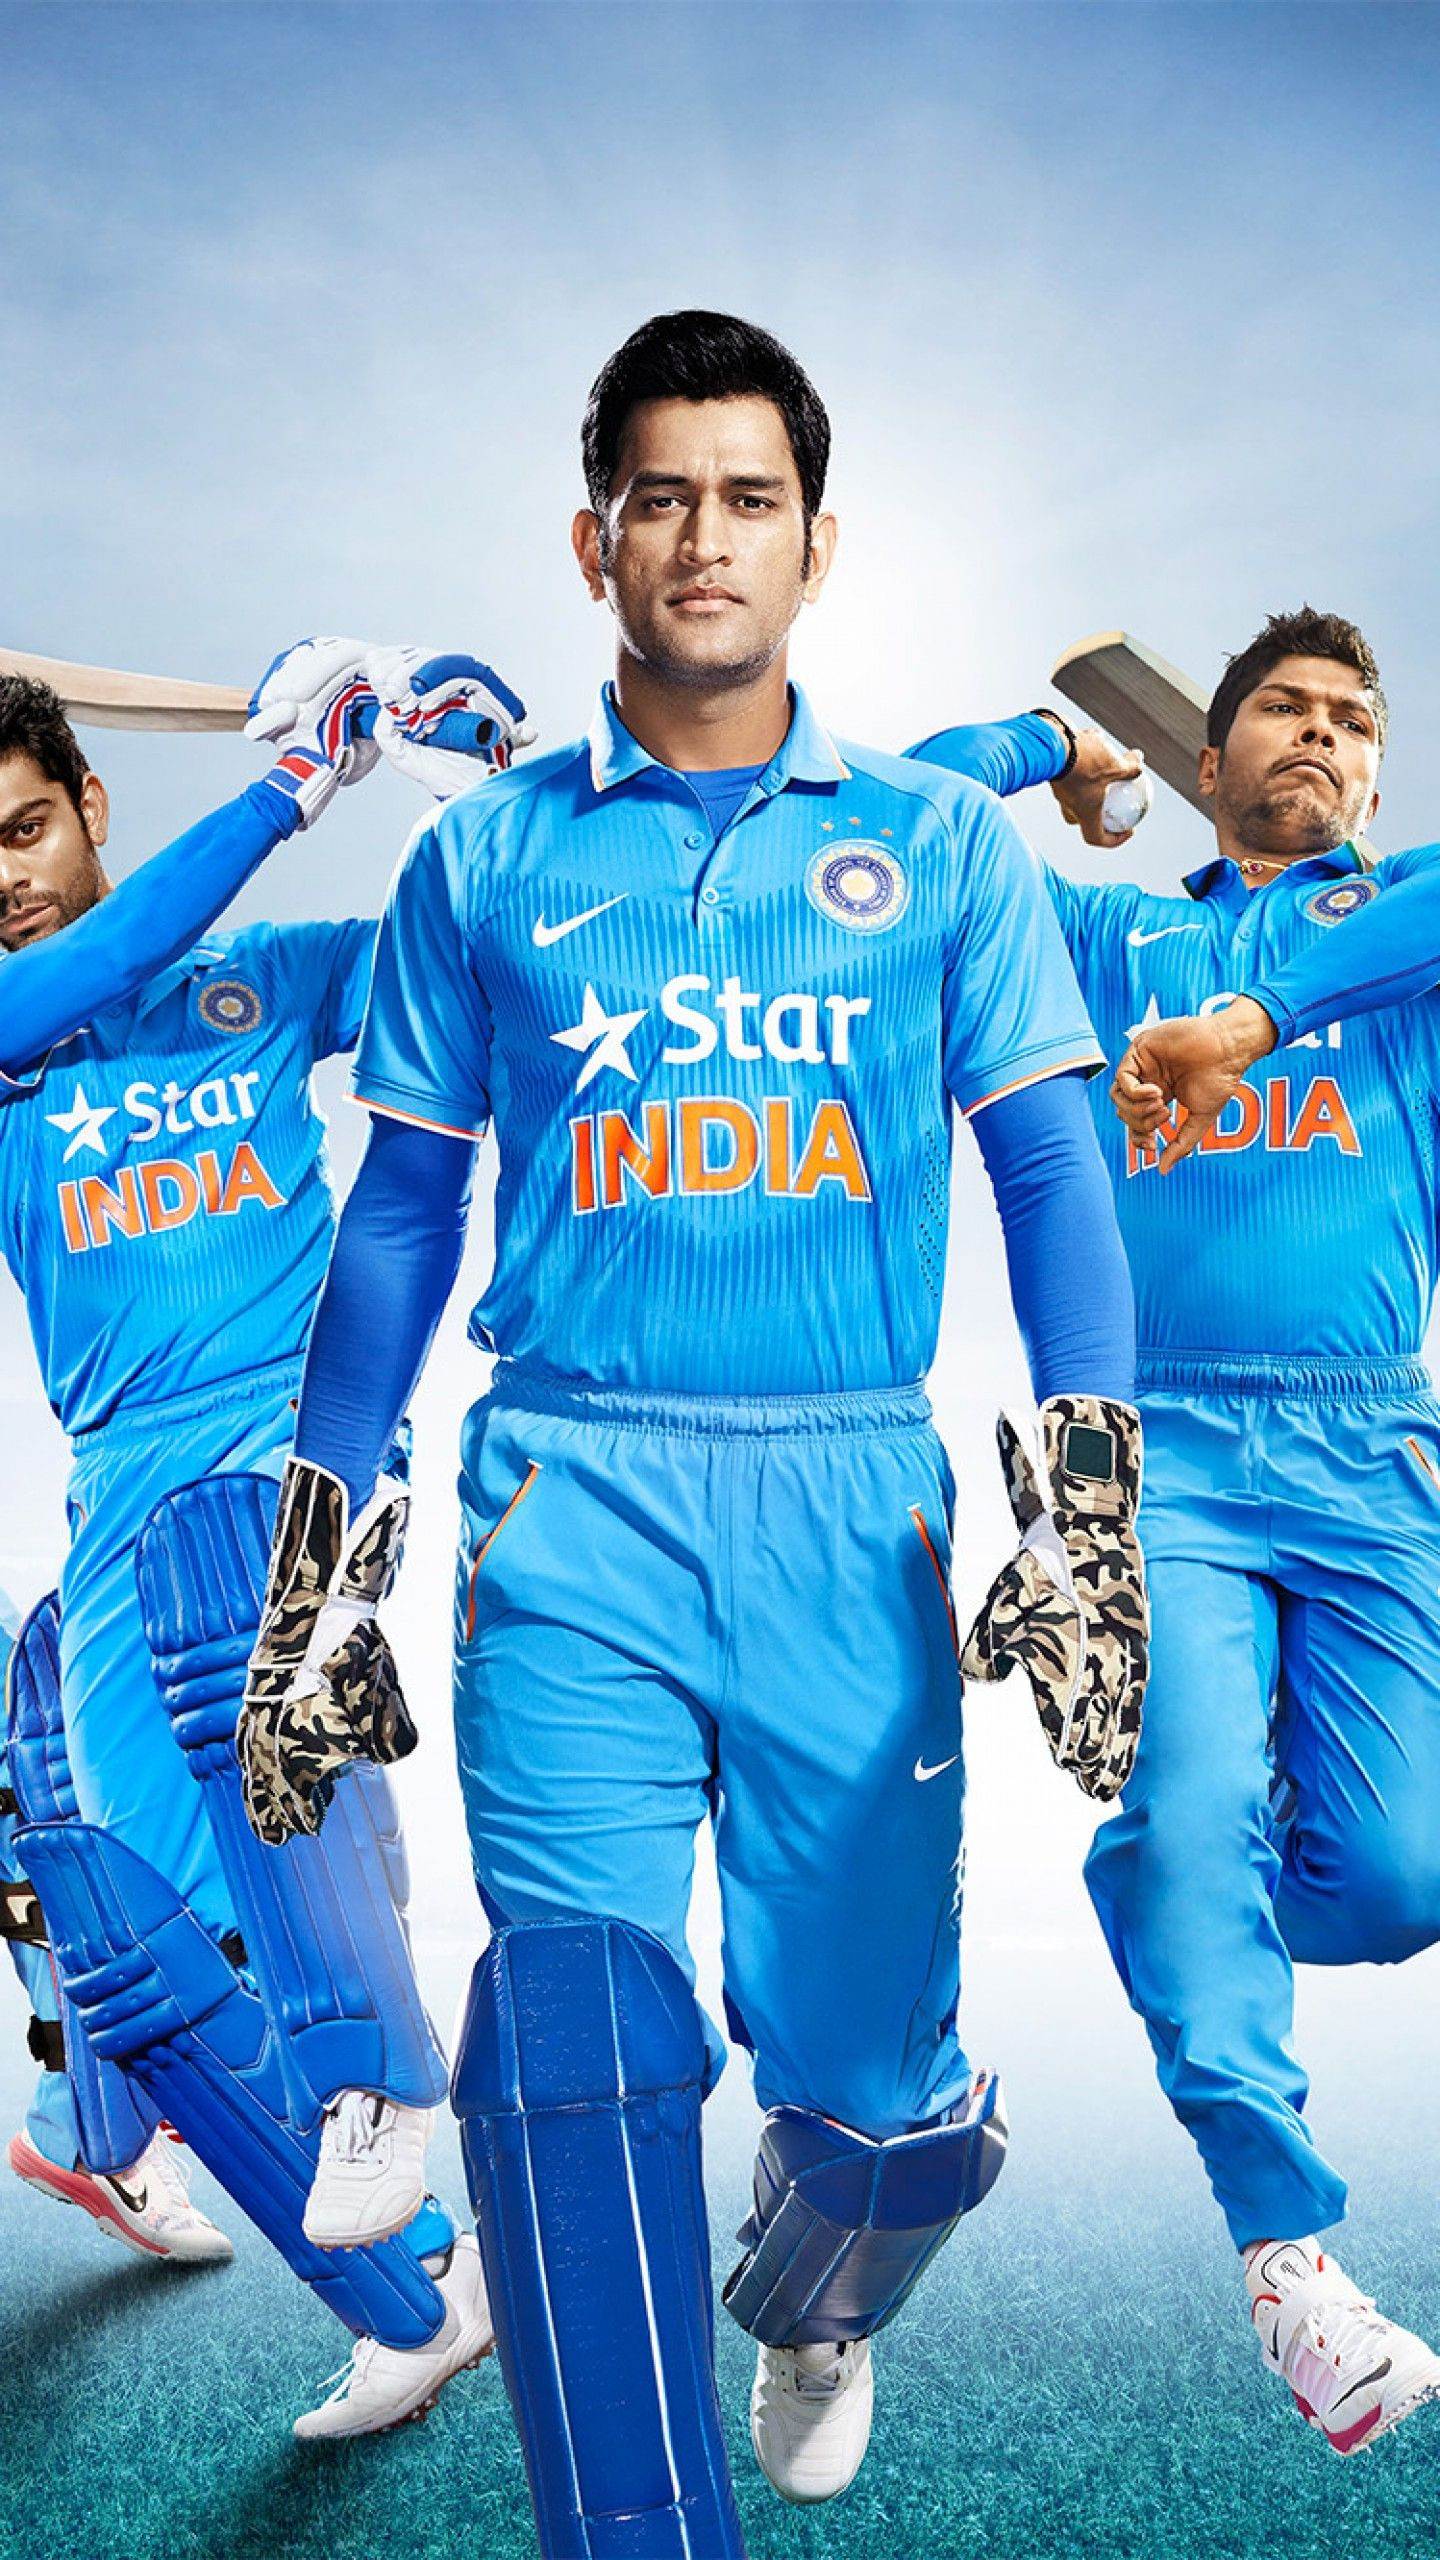 Wallpapers Team India, National cricket team, Indian Cricket Team